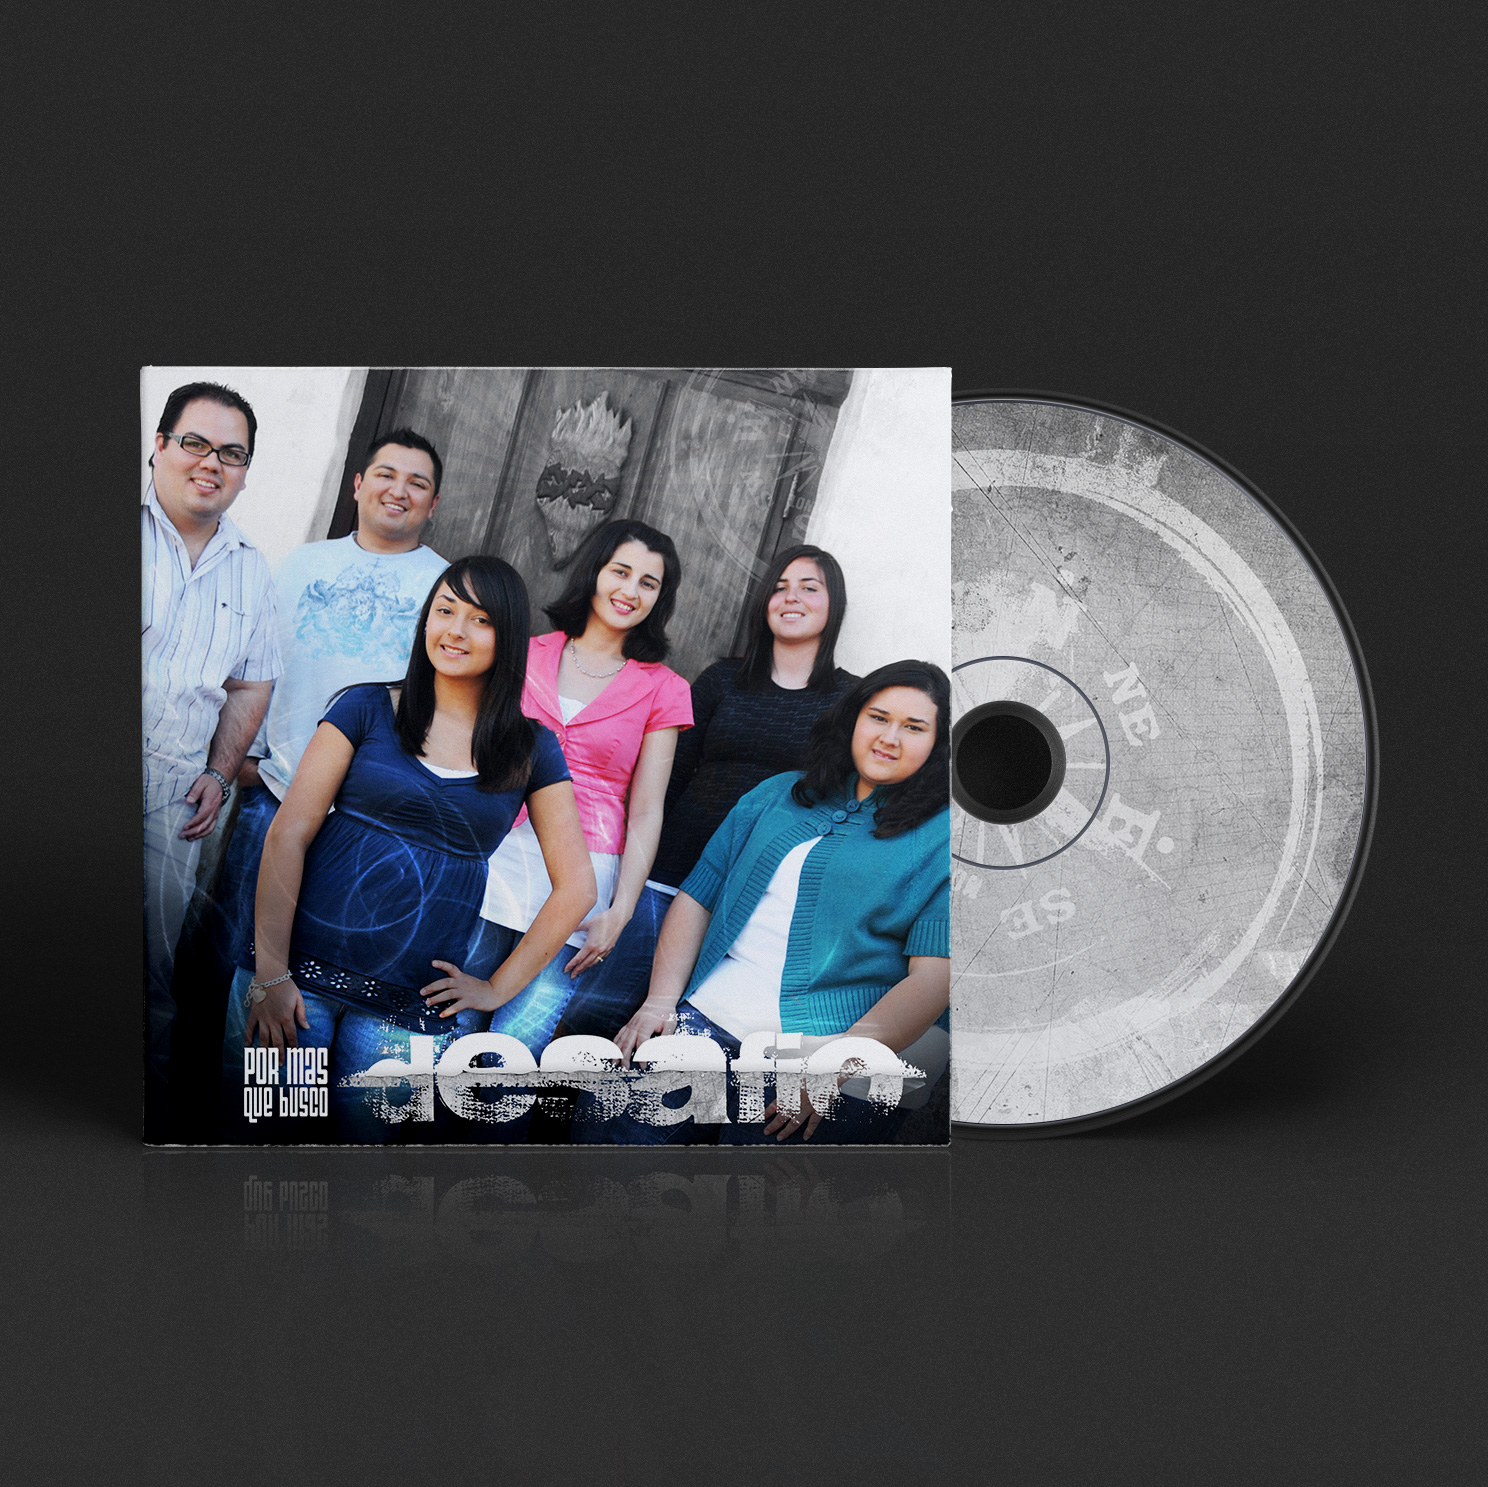 CD Design Por Mas Que Busco | Desafio Band